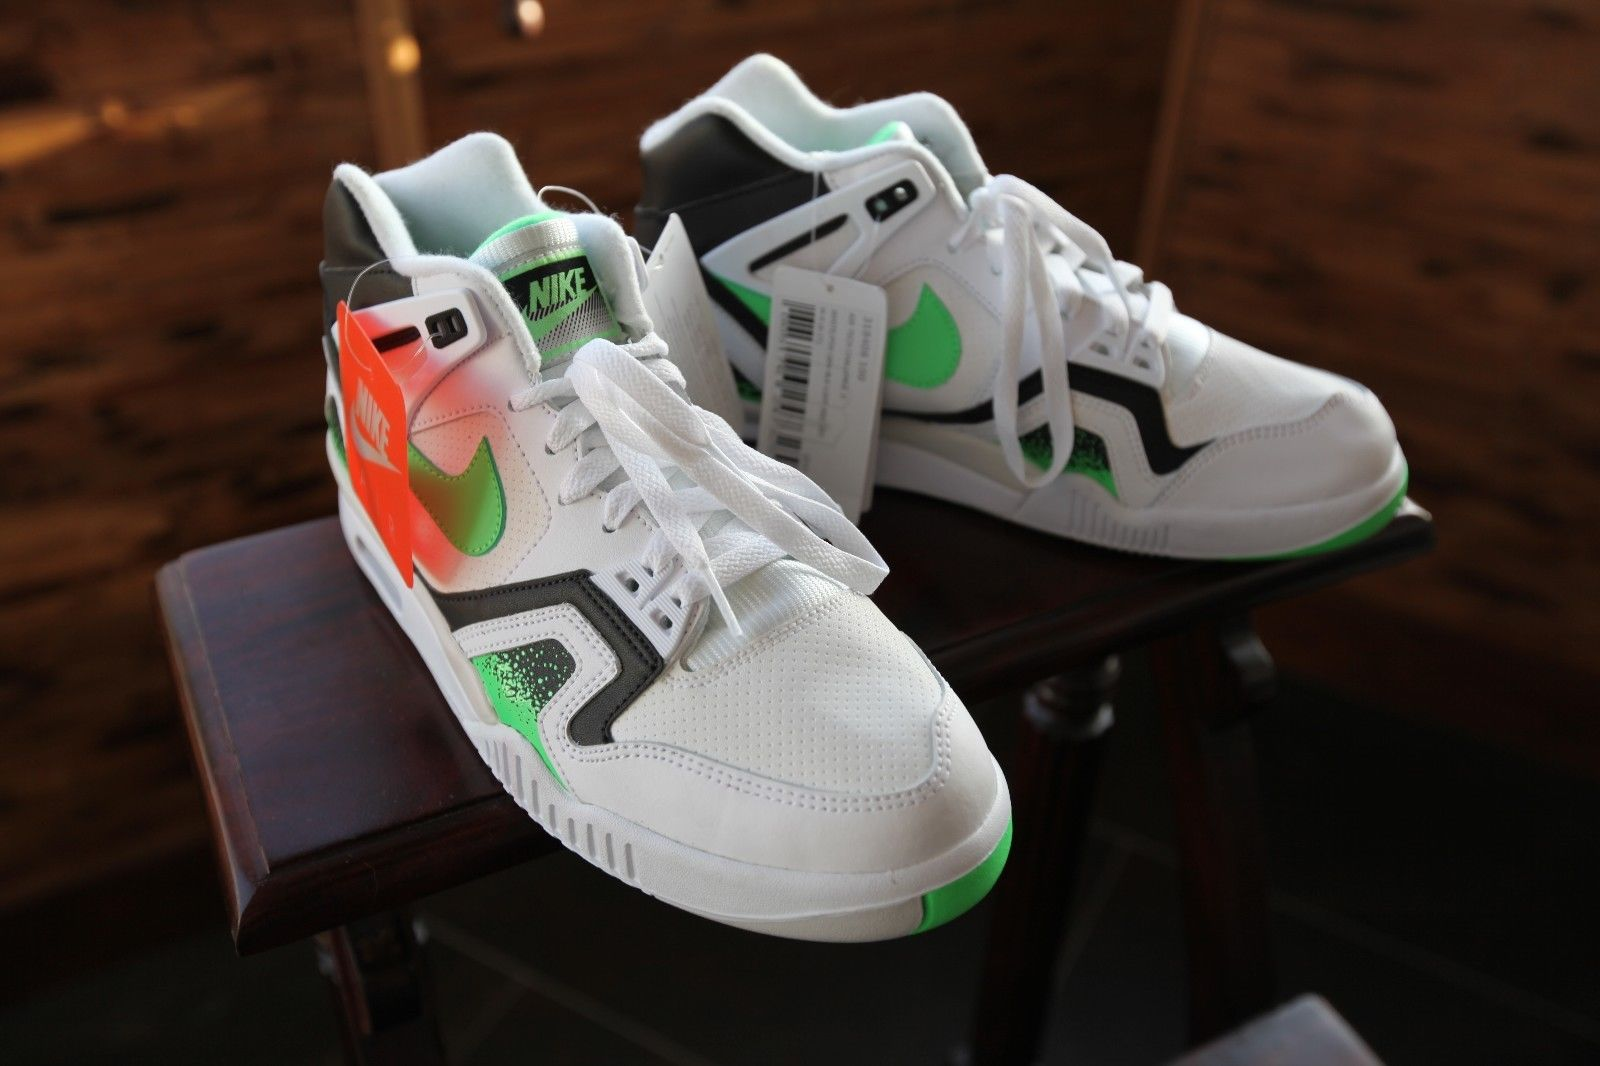 nike-air-tech-challenge-ii-white-black-poison-green-new-images-2